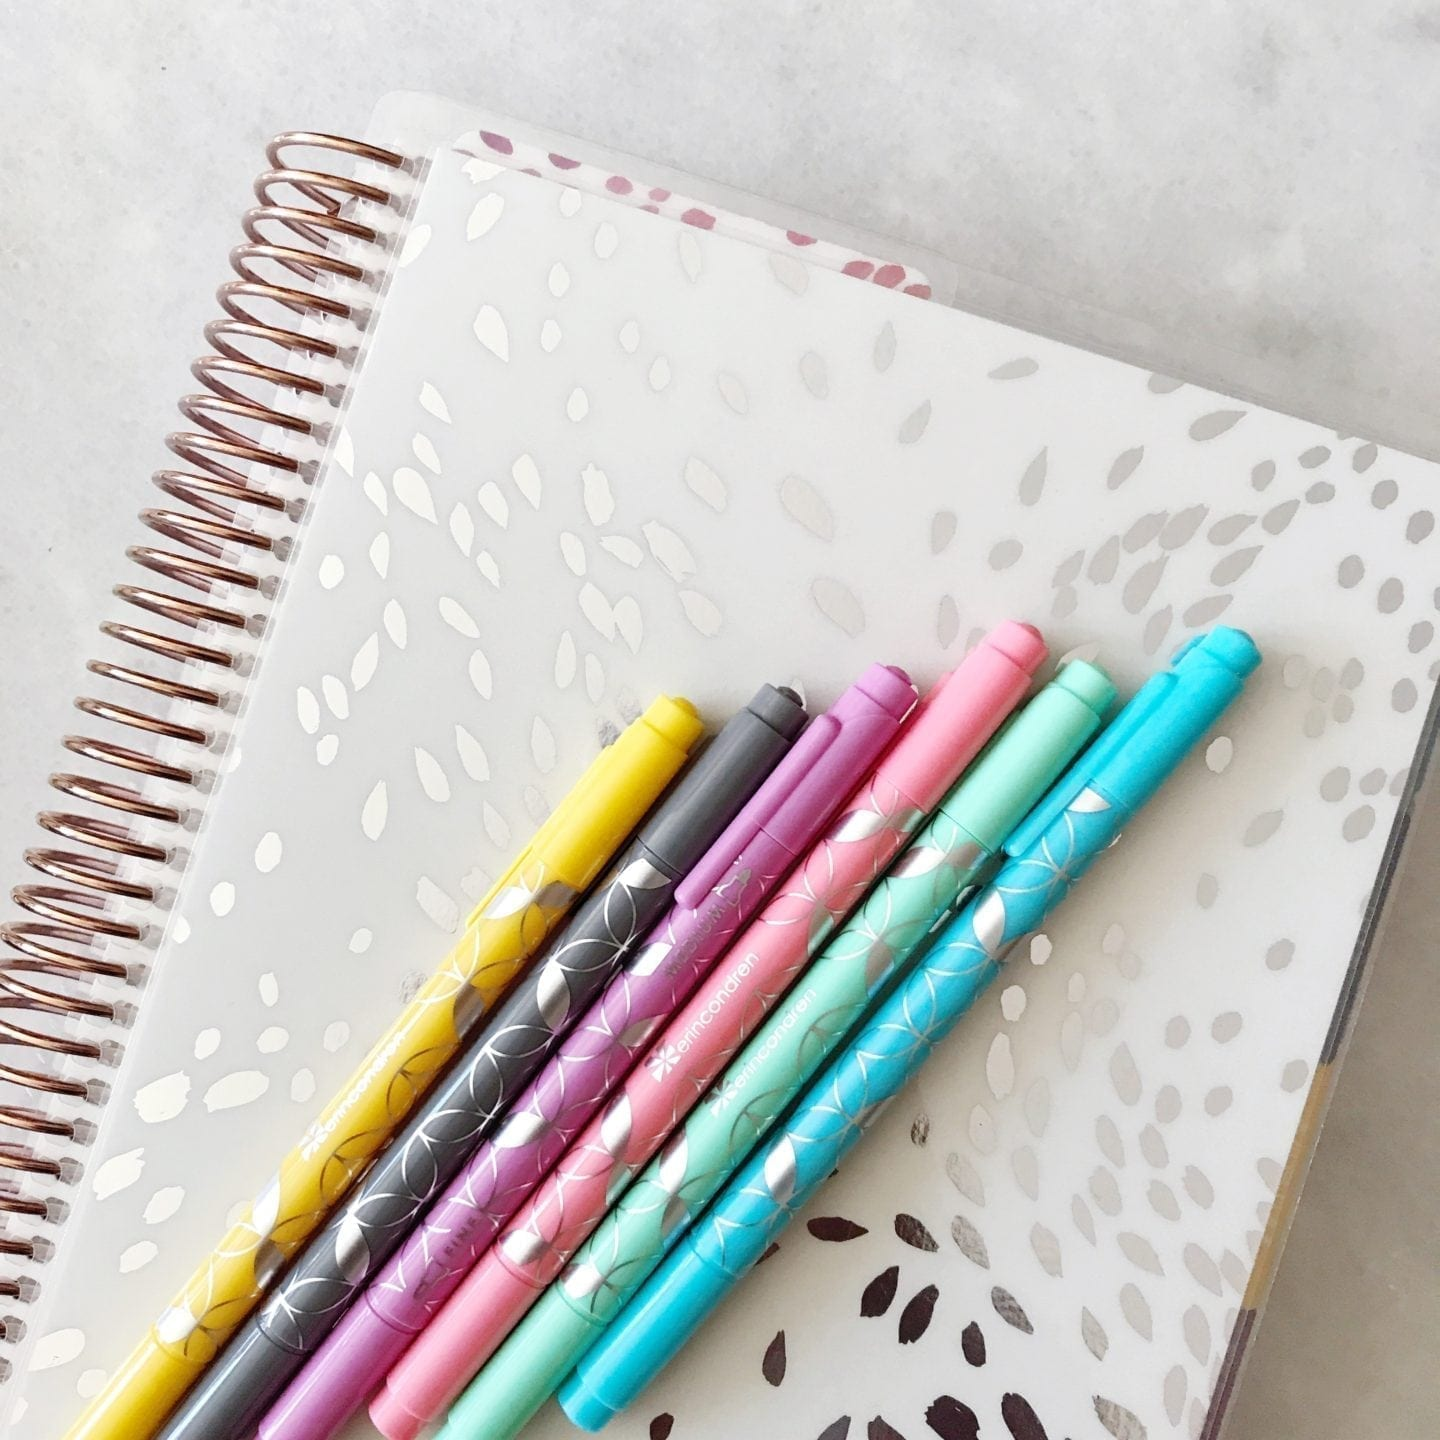 Using A Planner to Keep Your Life Organized